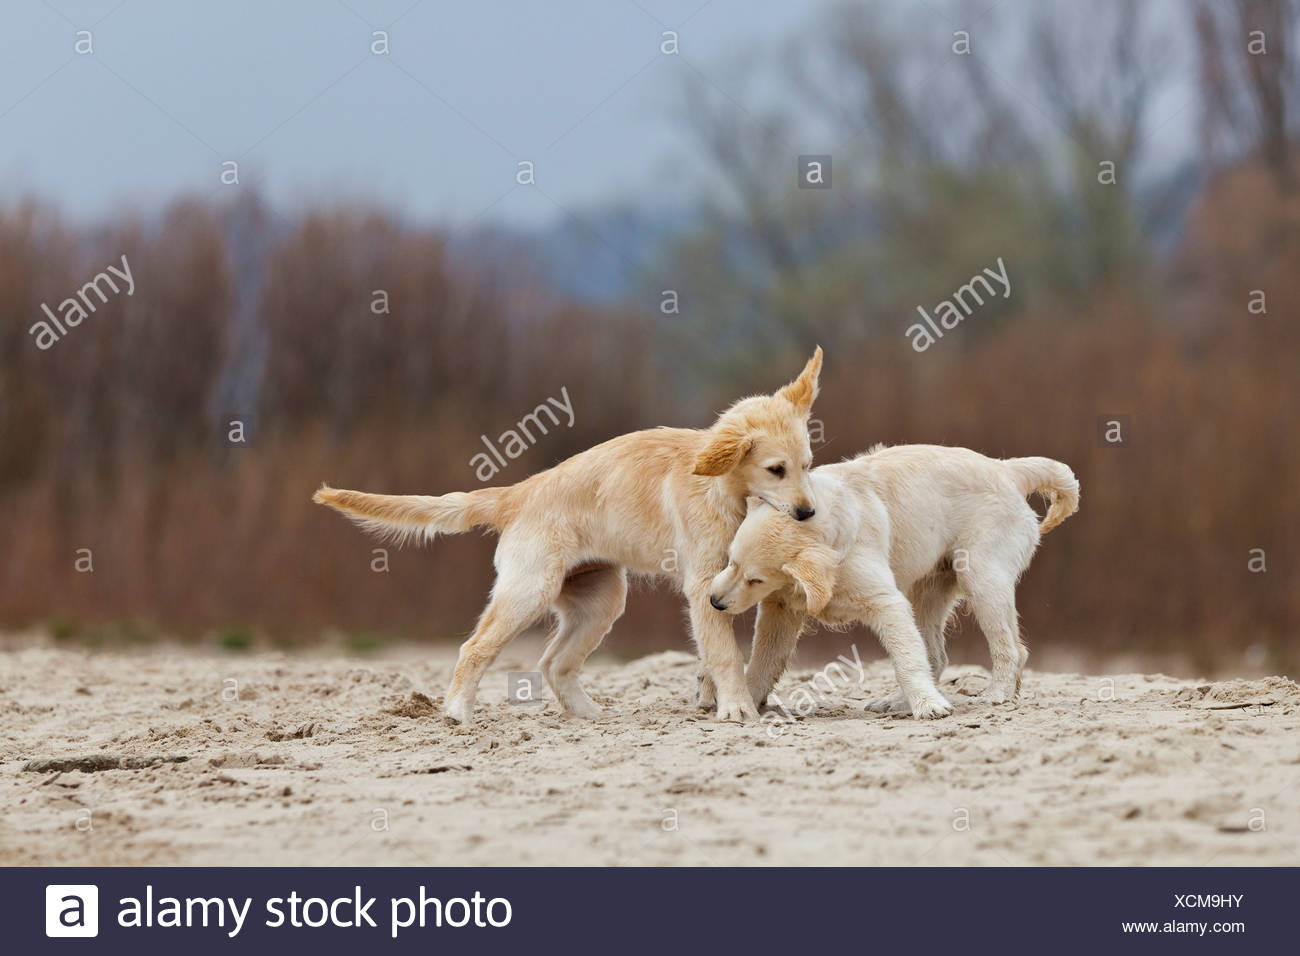 Two young Golden Retrievers playing on beach - Stock Image